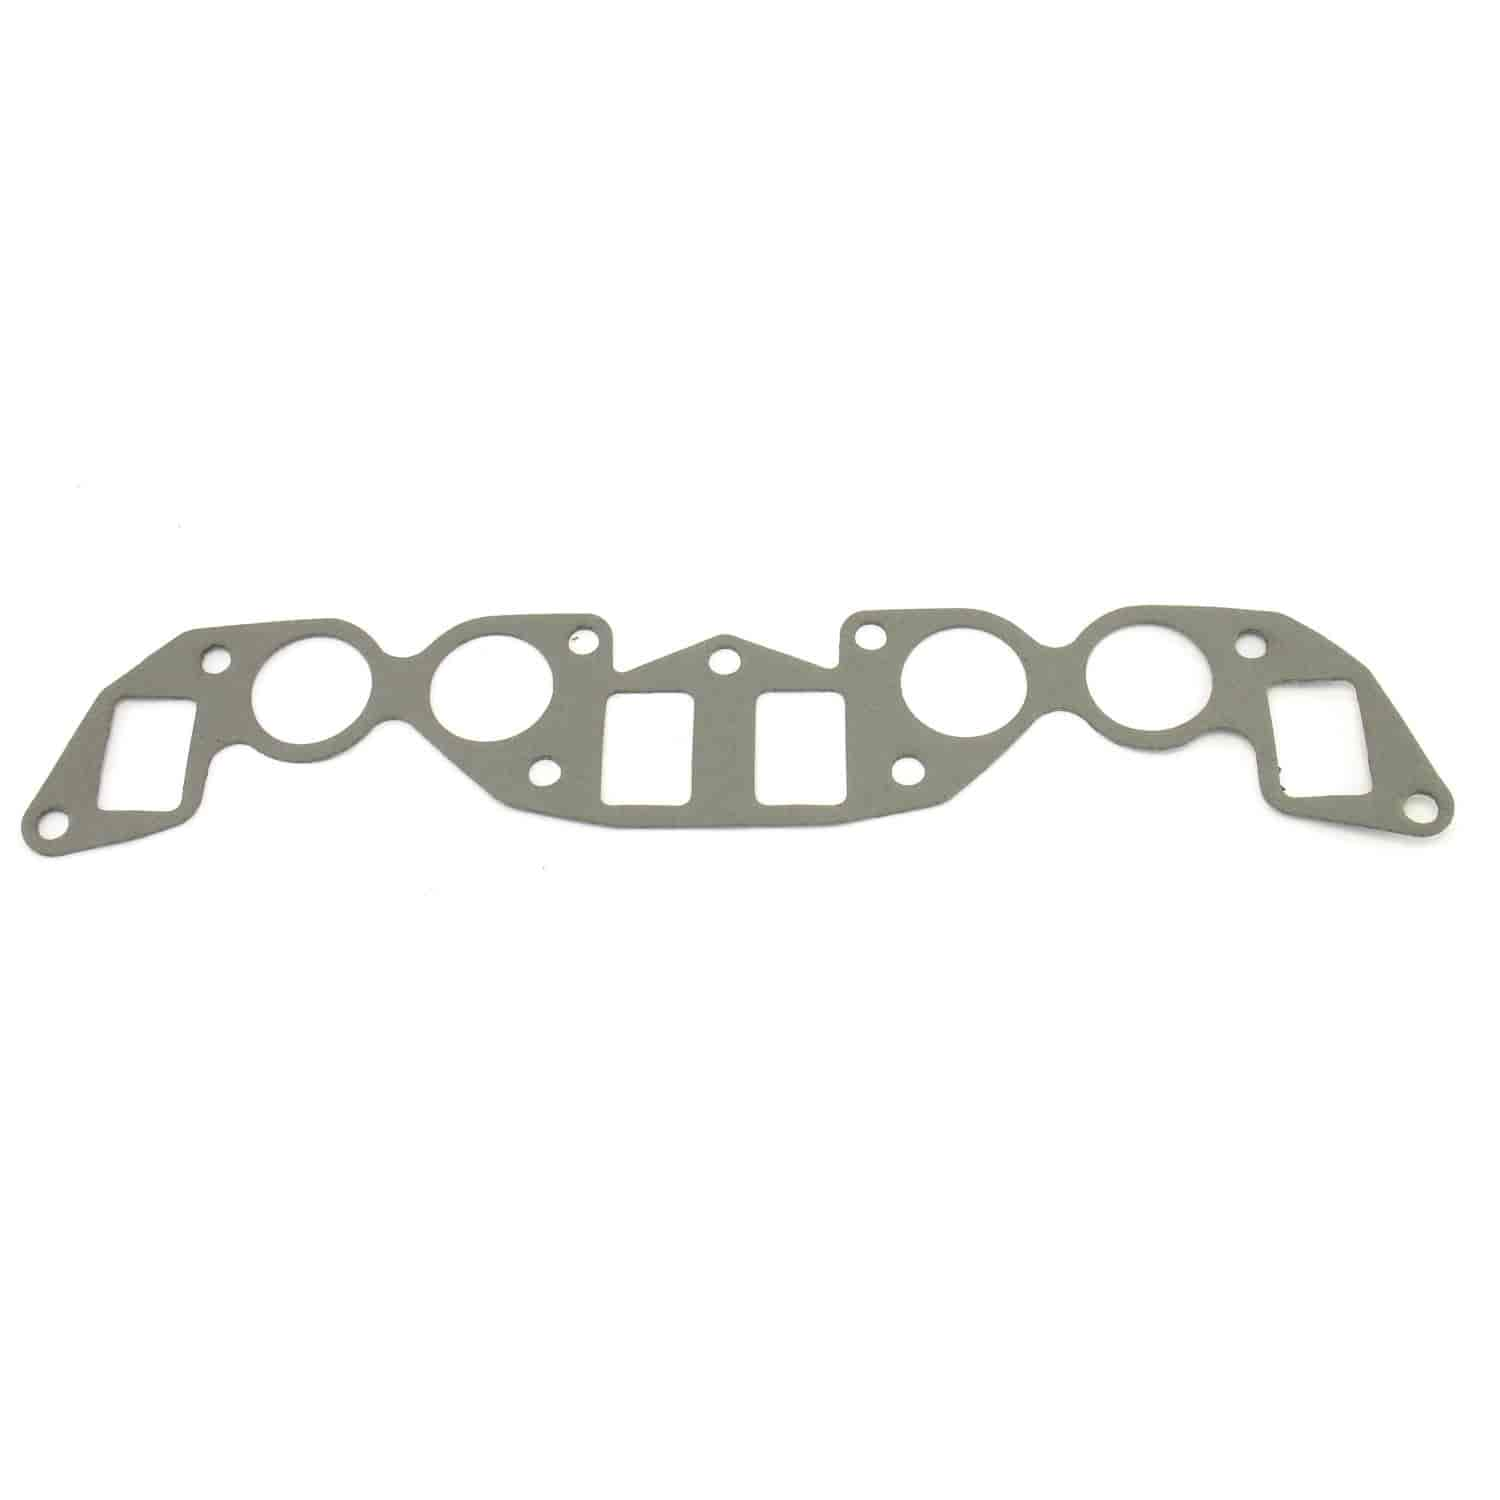 Patriot Exhaust H7583 - Patriot Exhaust Header Flange Gaskets